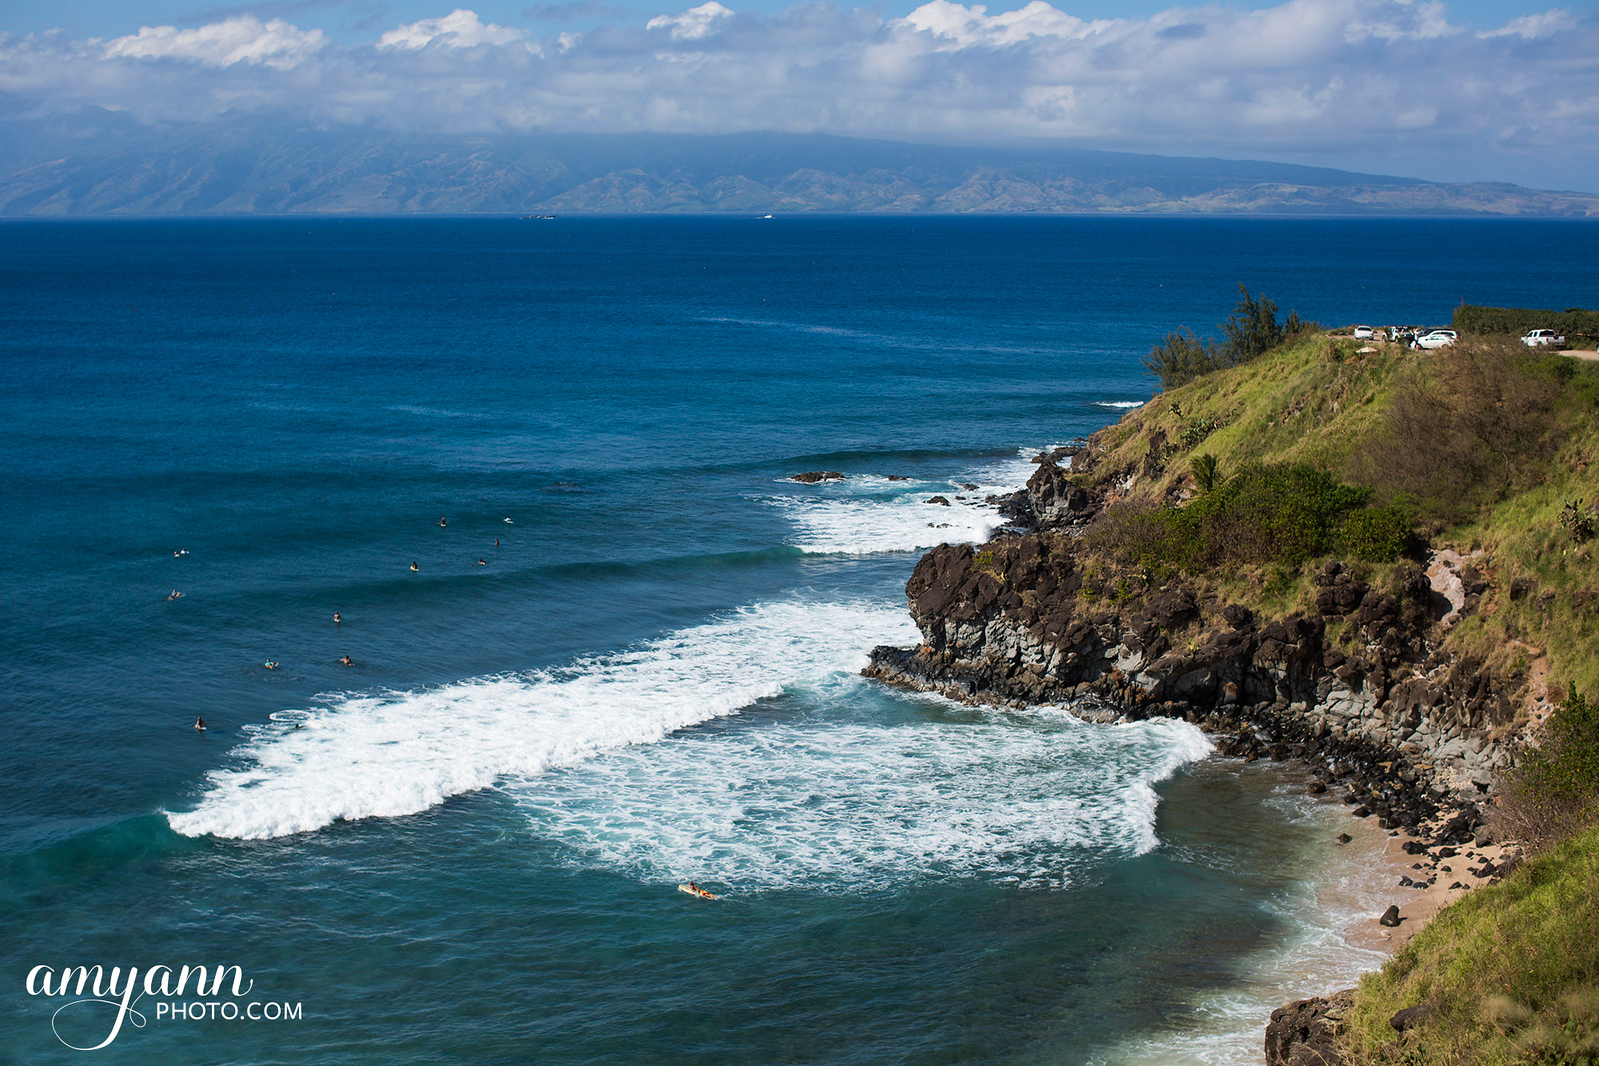 hawaii_amyannphoto_14